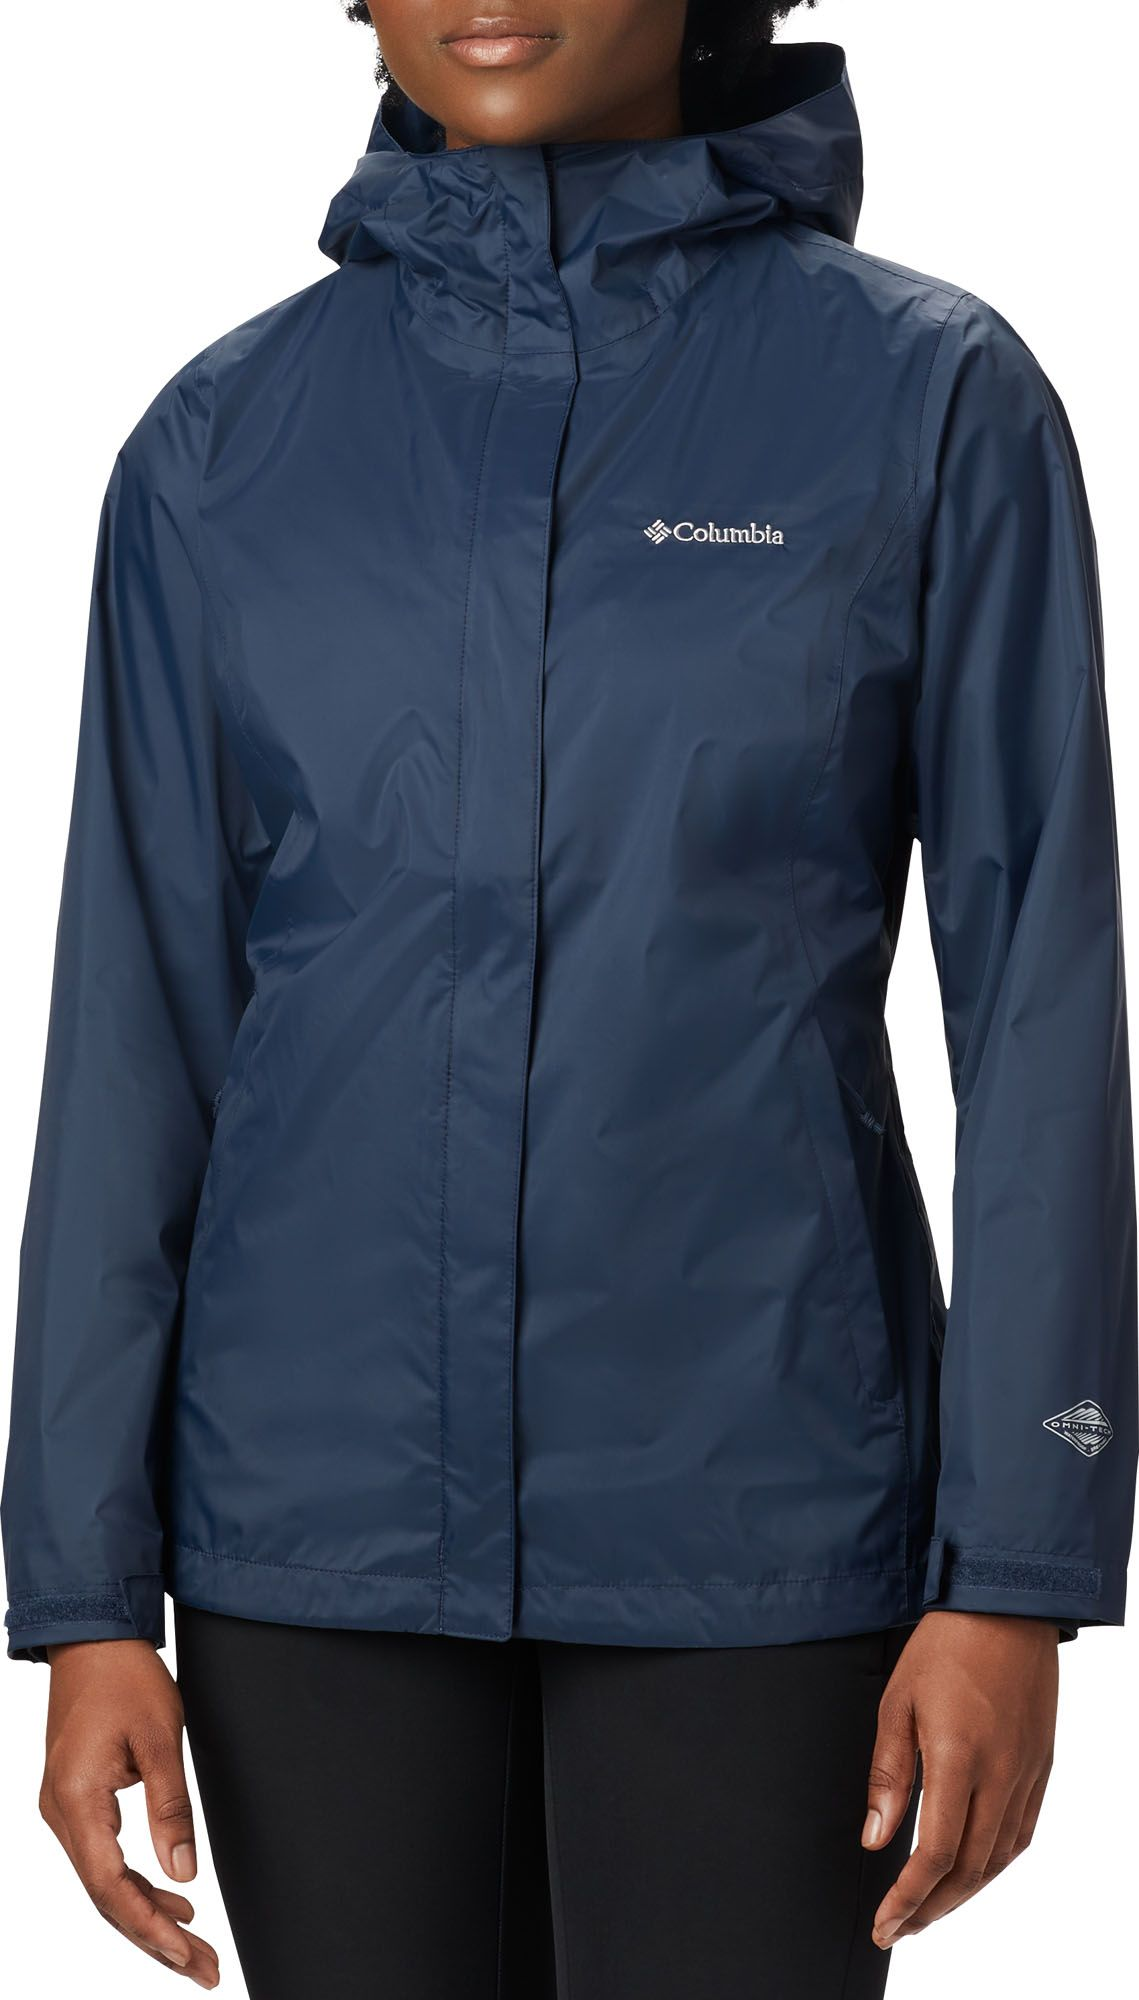 Rain Jackets & Coats for Women | DICK'S Sporting Goods